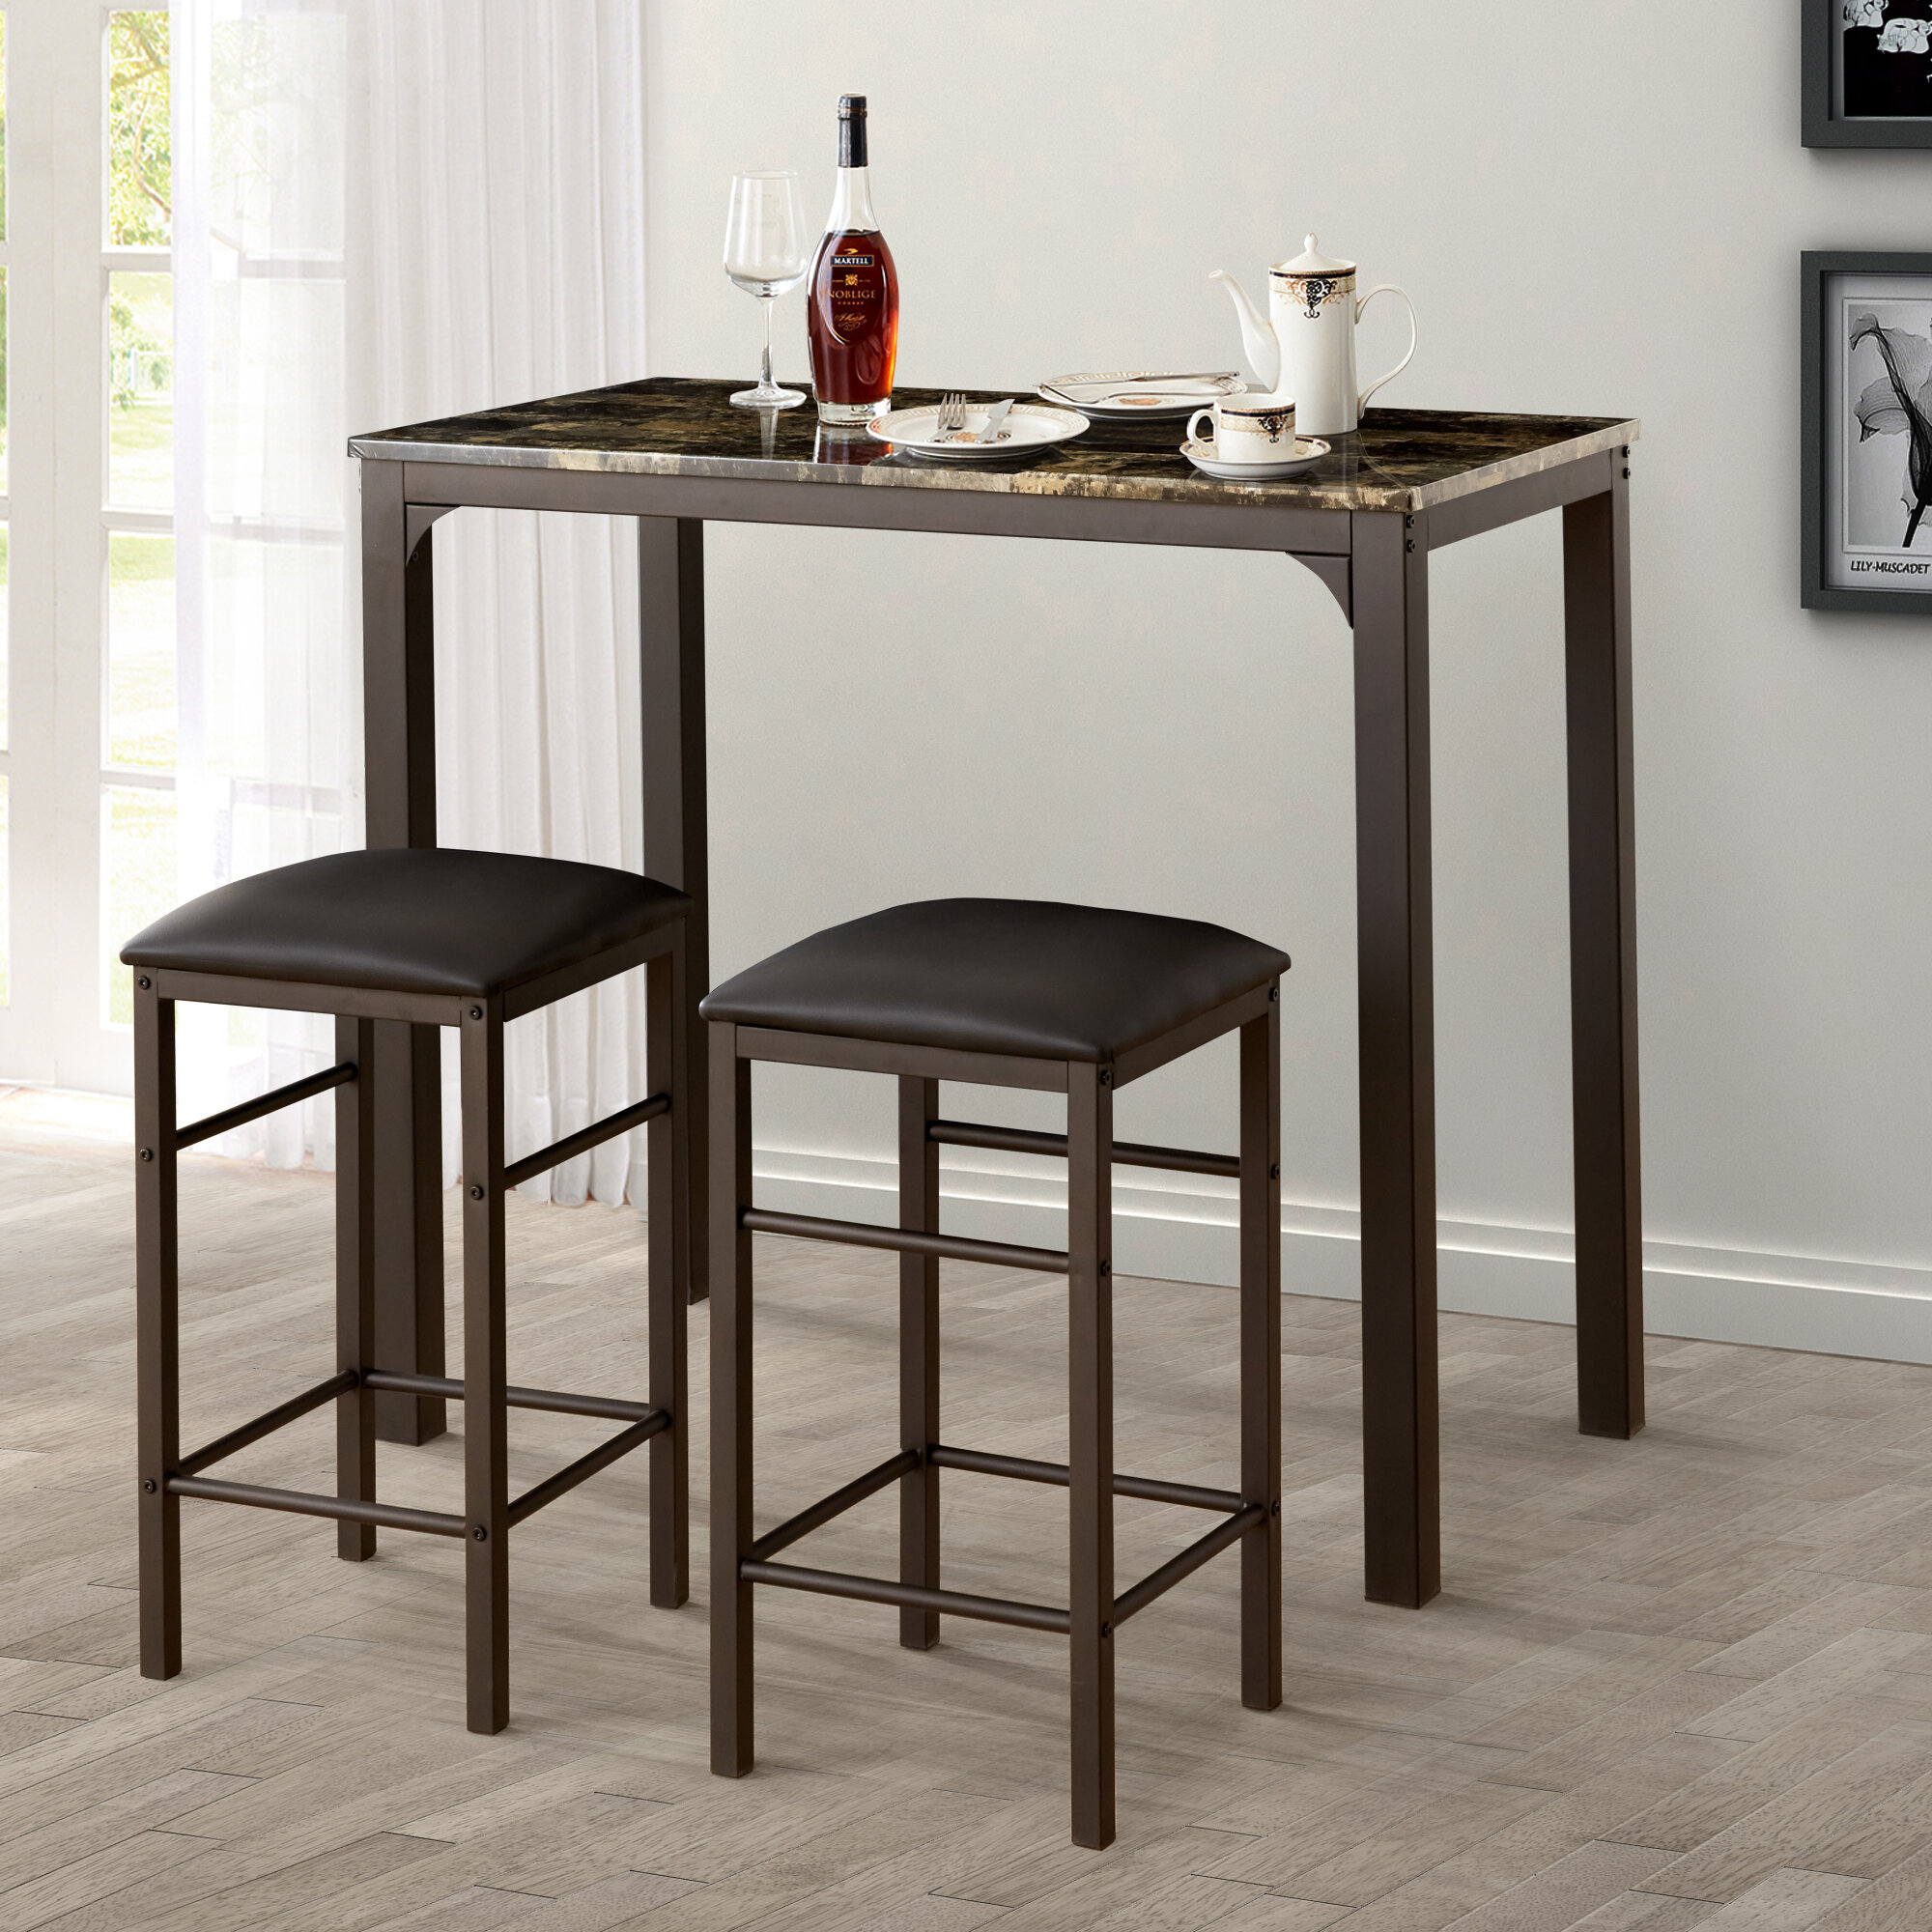 Lillard 3 Piece Breakfast Nook Dining Set With Regard To Most Recent Miskell 3 Piece Dining Sets (Image 13 of 20)